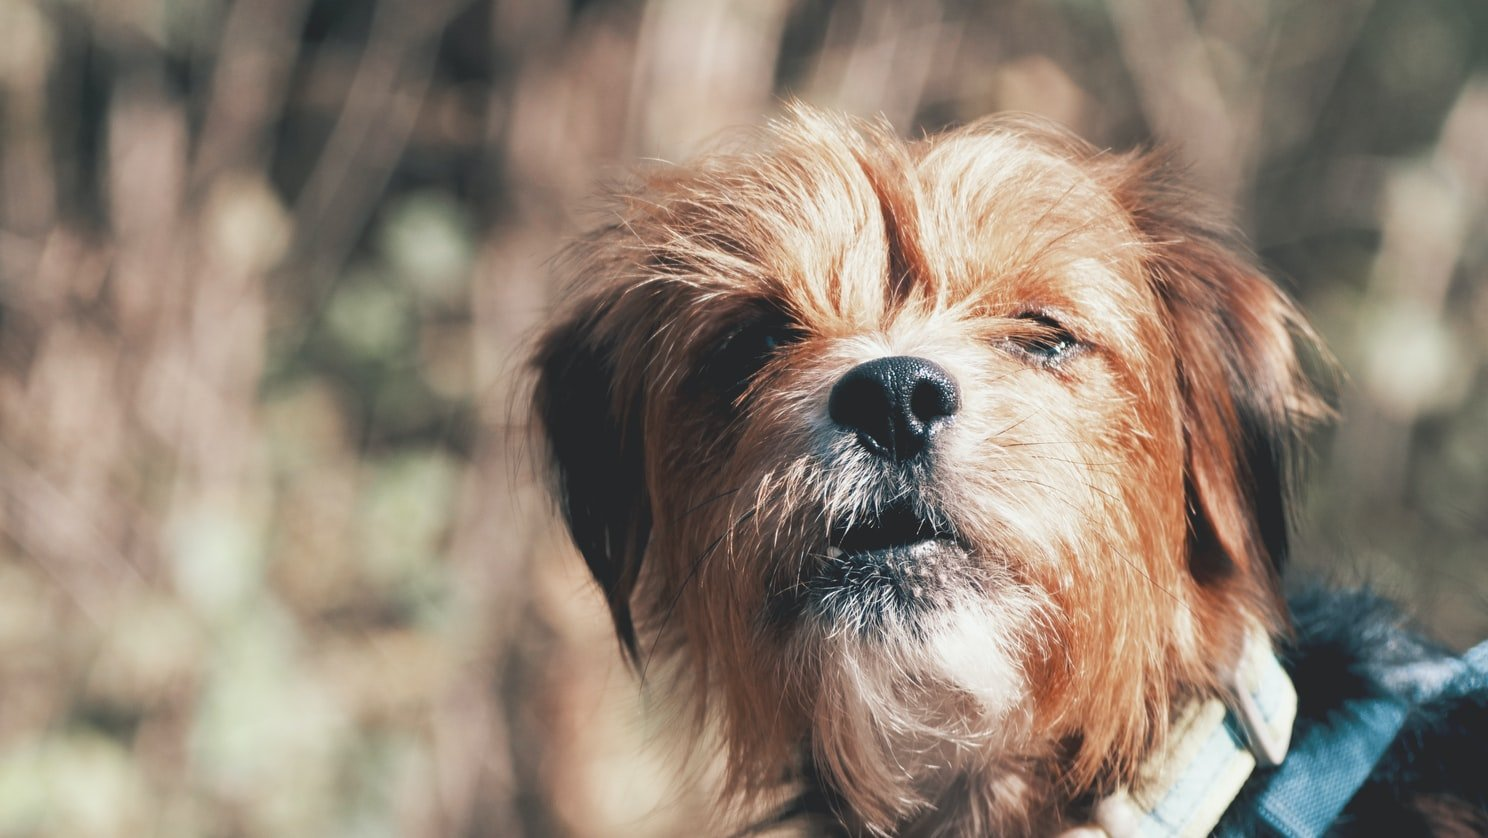 My neighbor had one of those pesky tiny dogs who bark all the time | Source: Unsplash